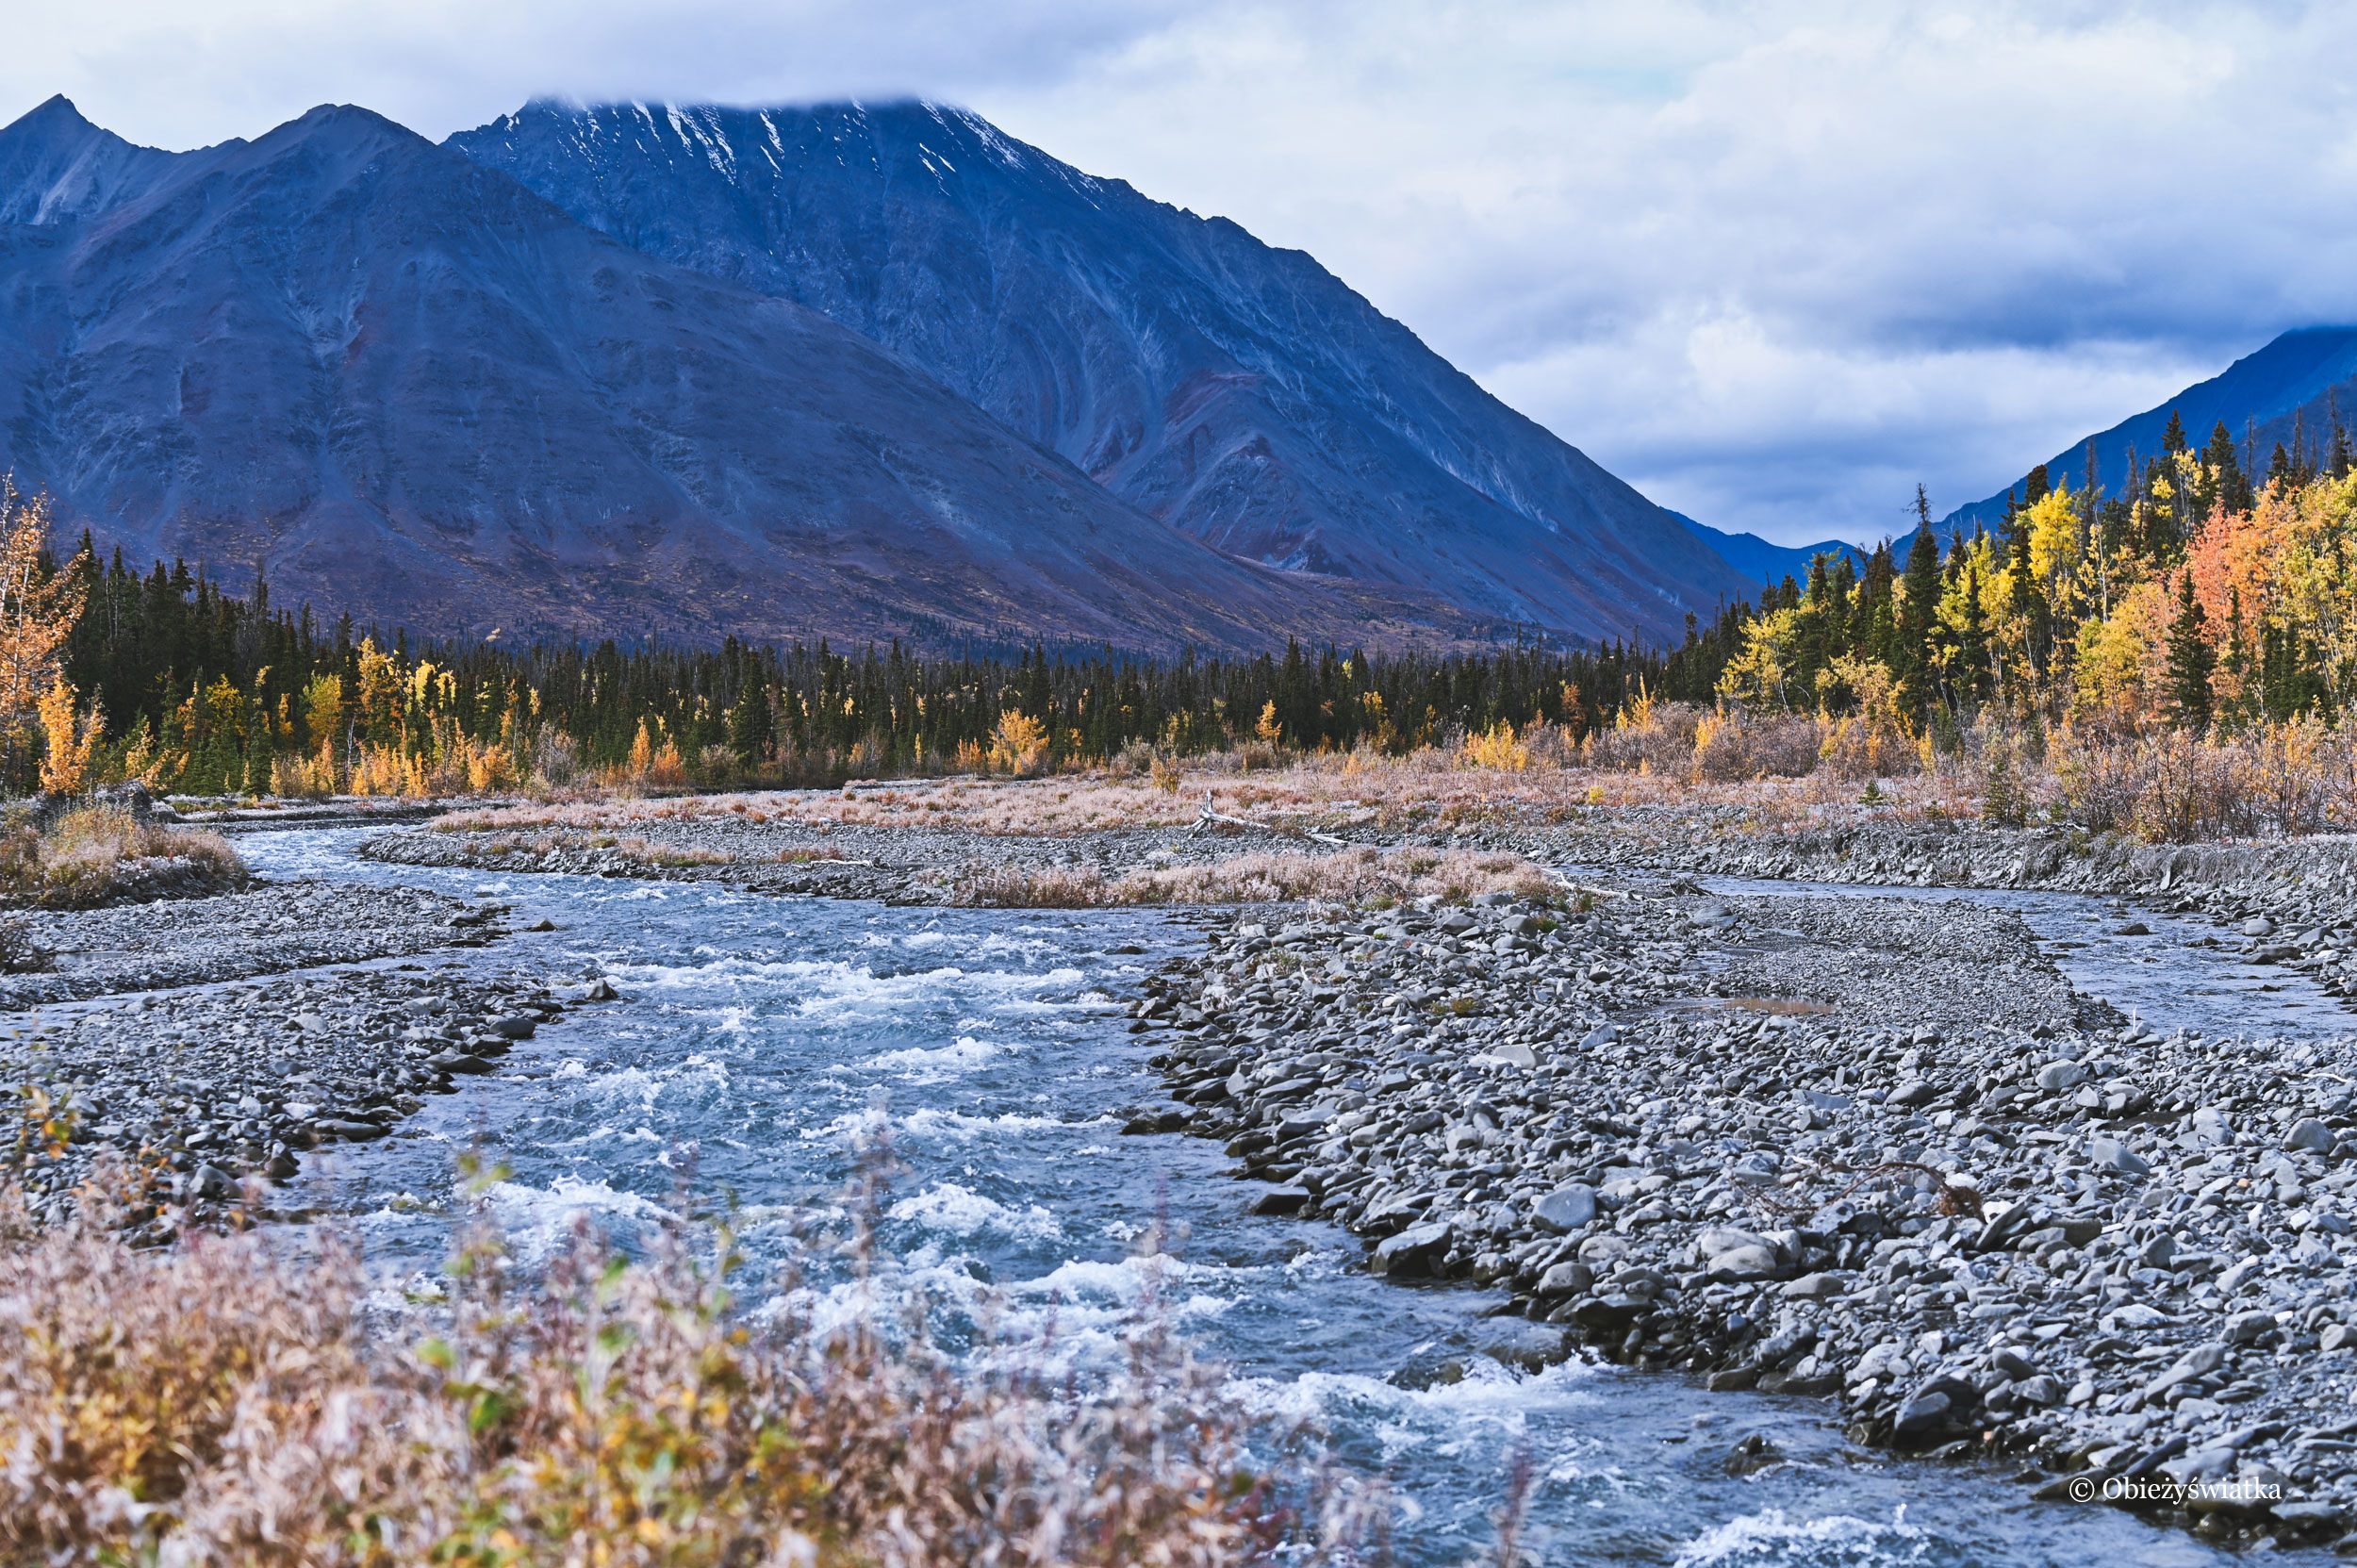 Quill Creek, Kluane National Park, Canada